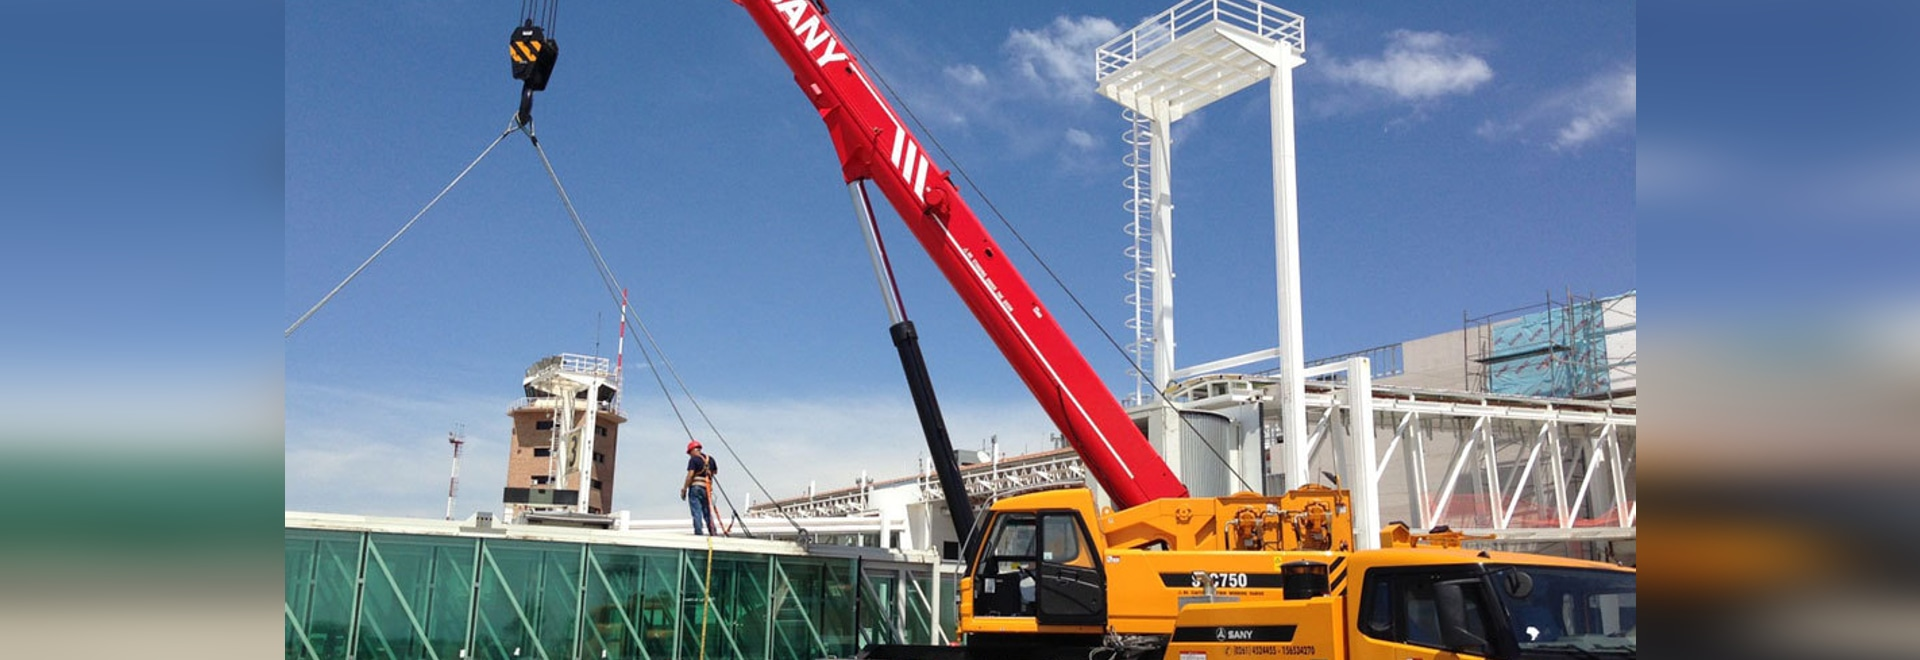 SANY STC750 TRUCK CRANE IN ARGENTINA